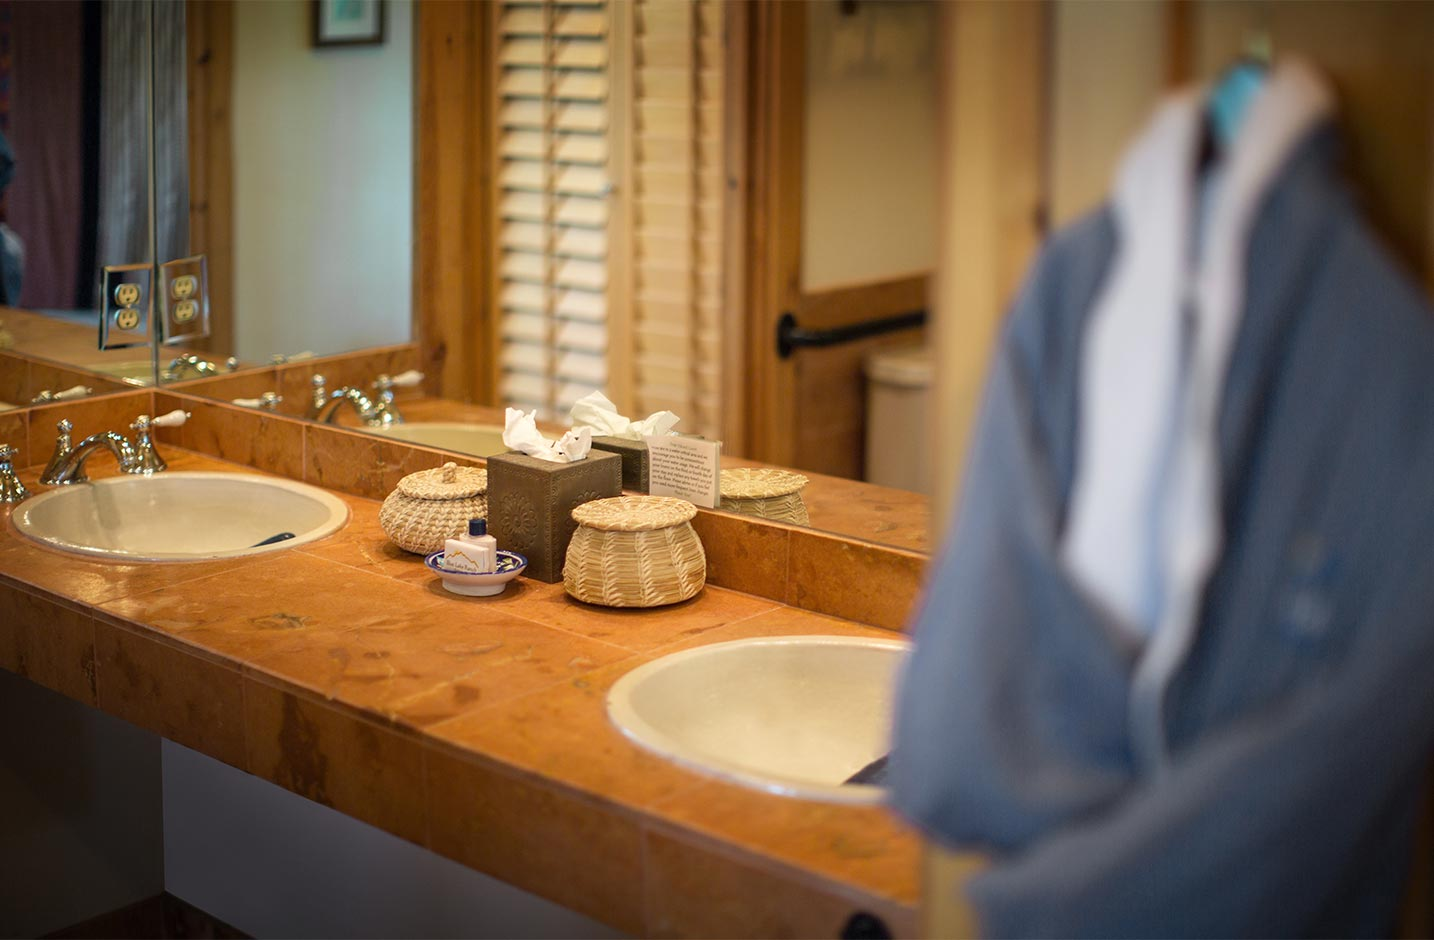 A bathroom with vanity sinks and mirror